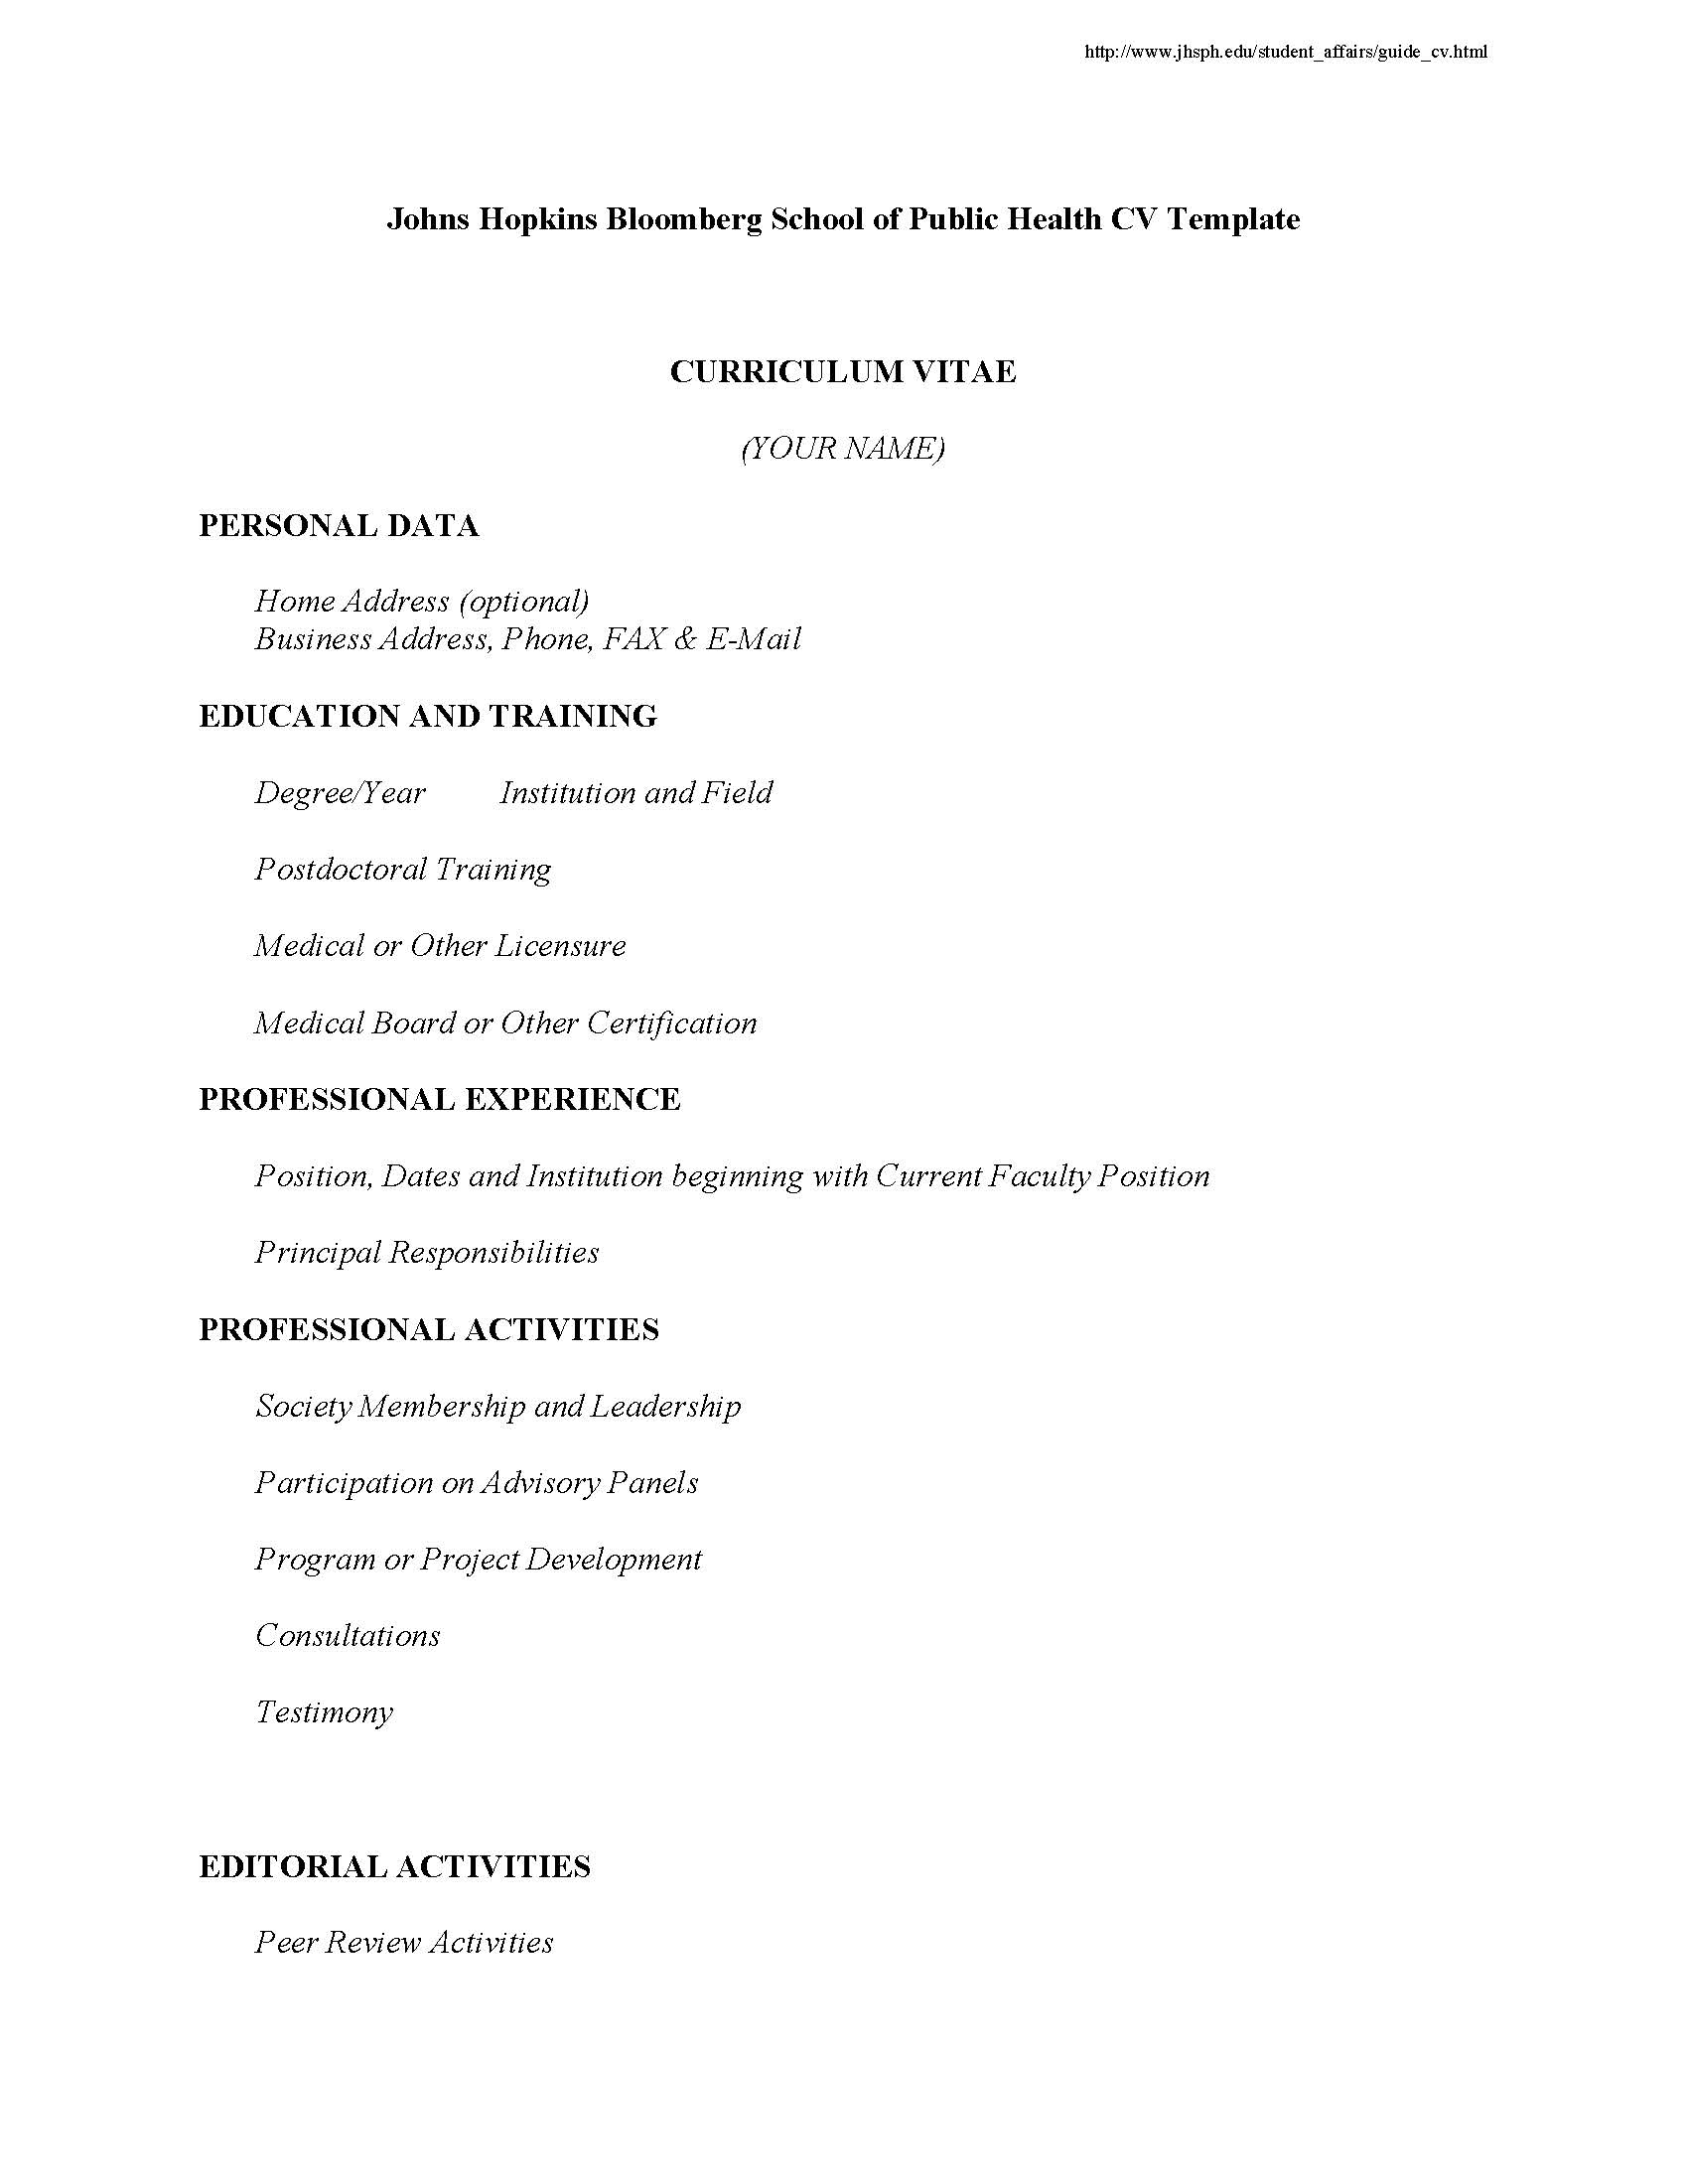 jhsph cv template - Professional Resume Writers Cost